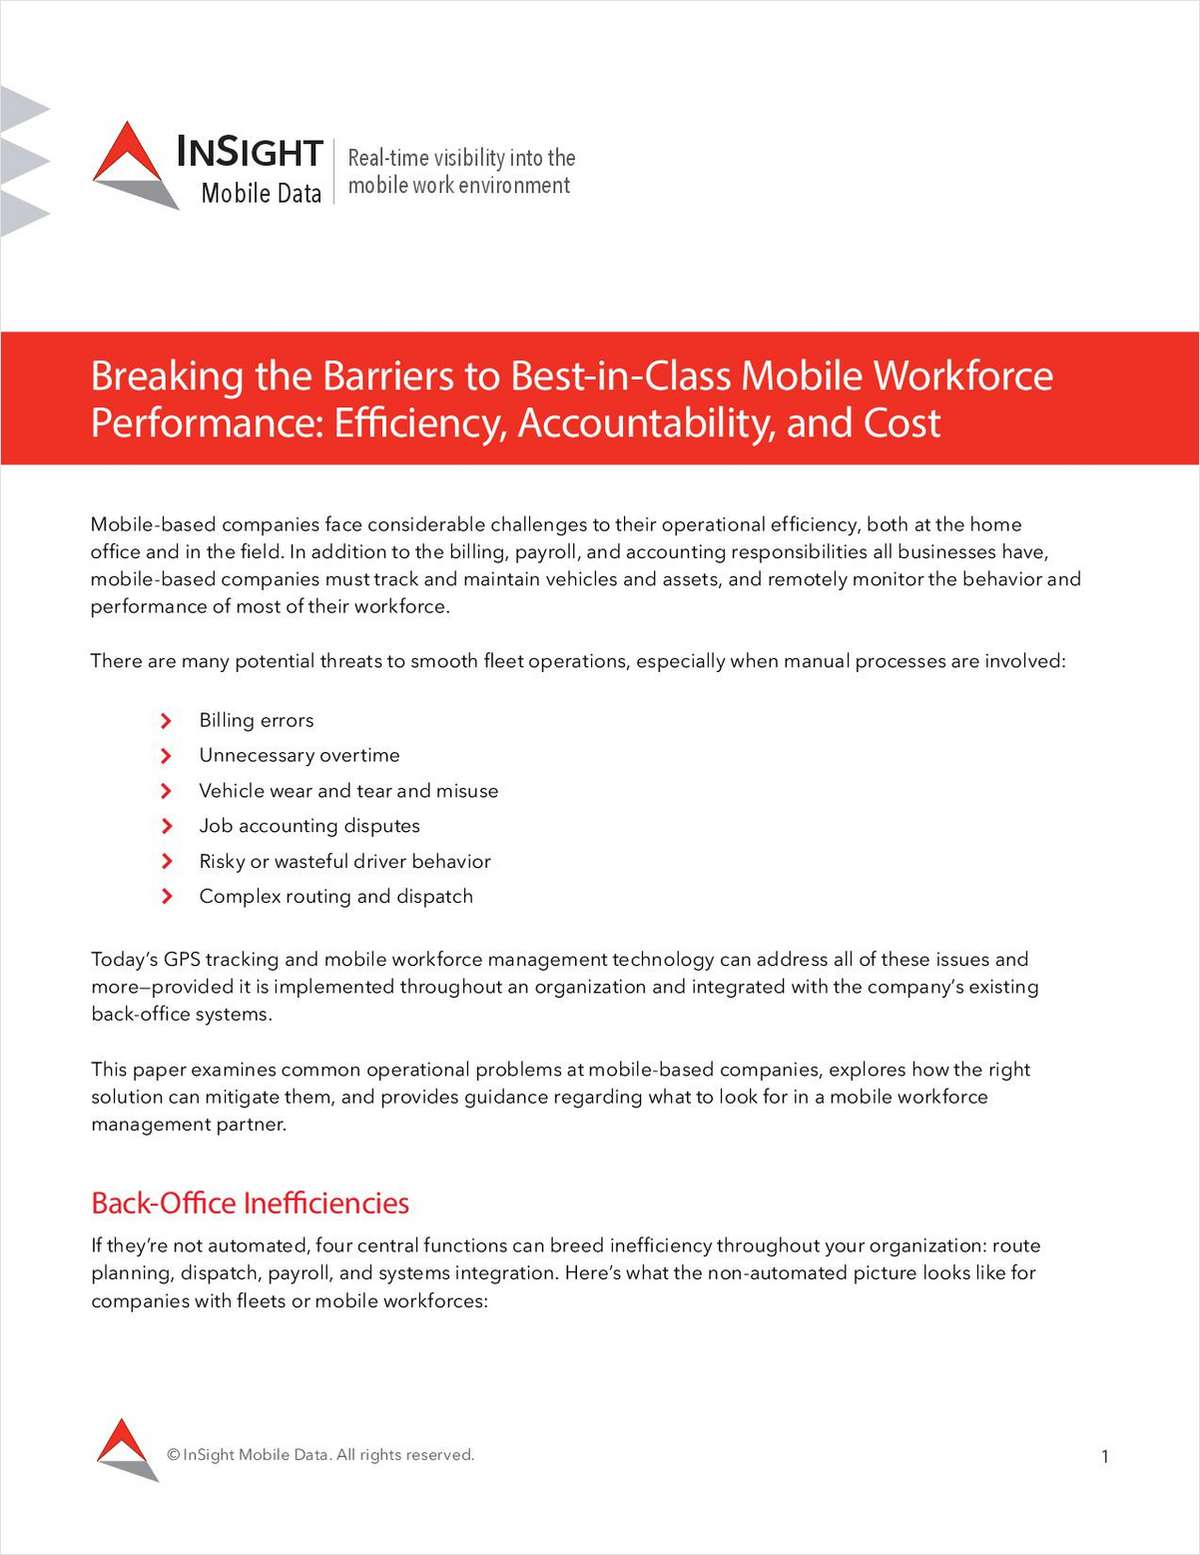 Breaking the Barriers to Best-in-Class Mobile Workforce Performance: Efficiency, Accountability and Cost